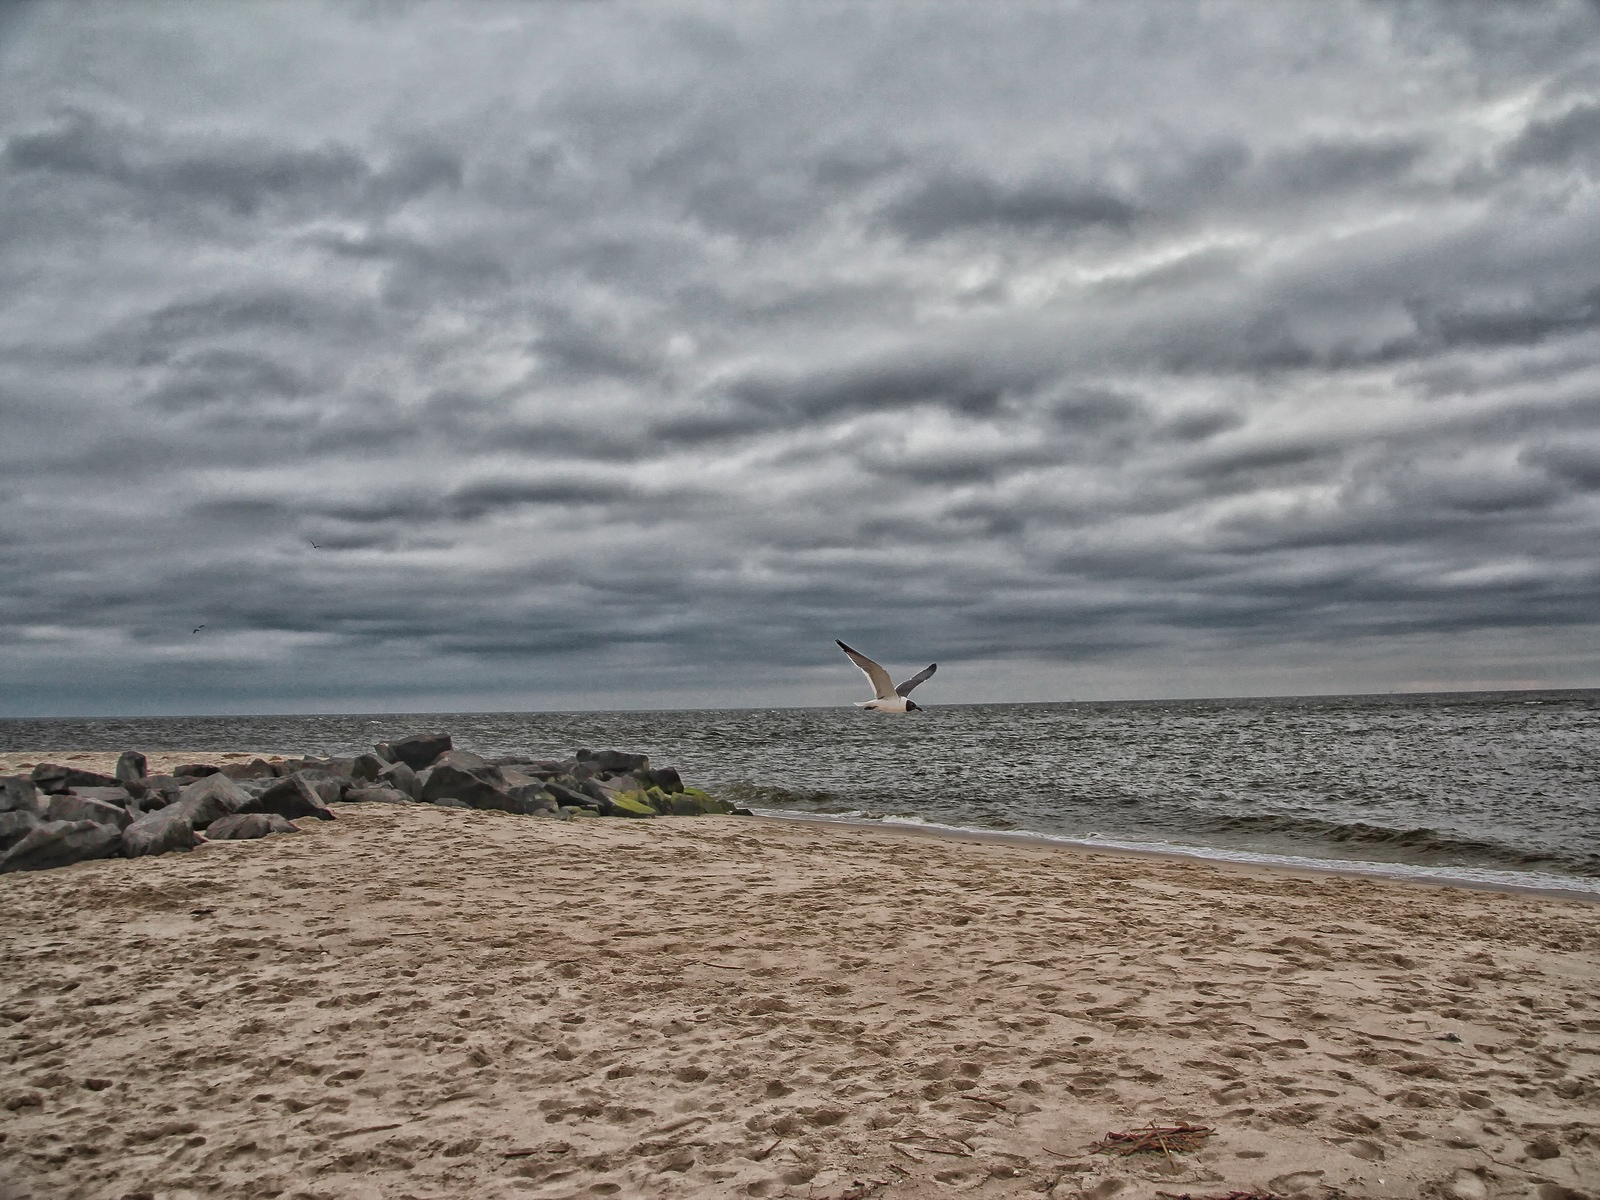 On this large space the Atlantic Ocean and Delaware Bay meet at Sunset Beach.